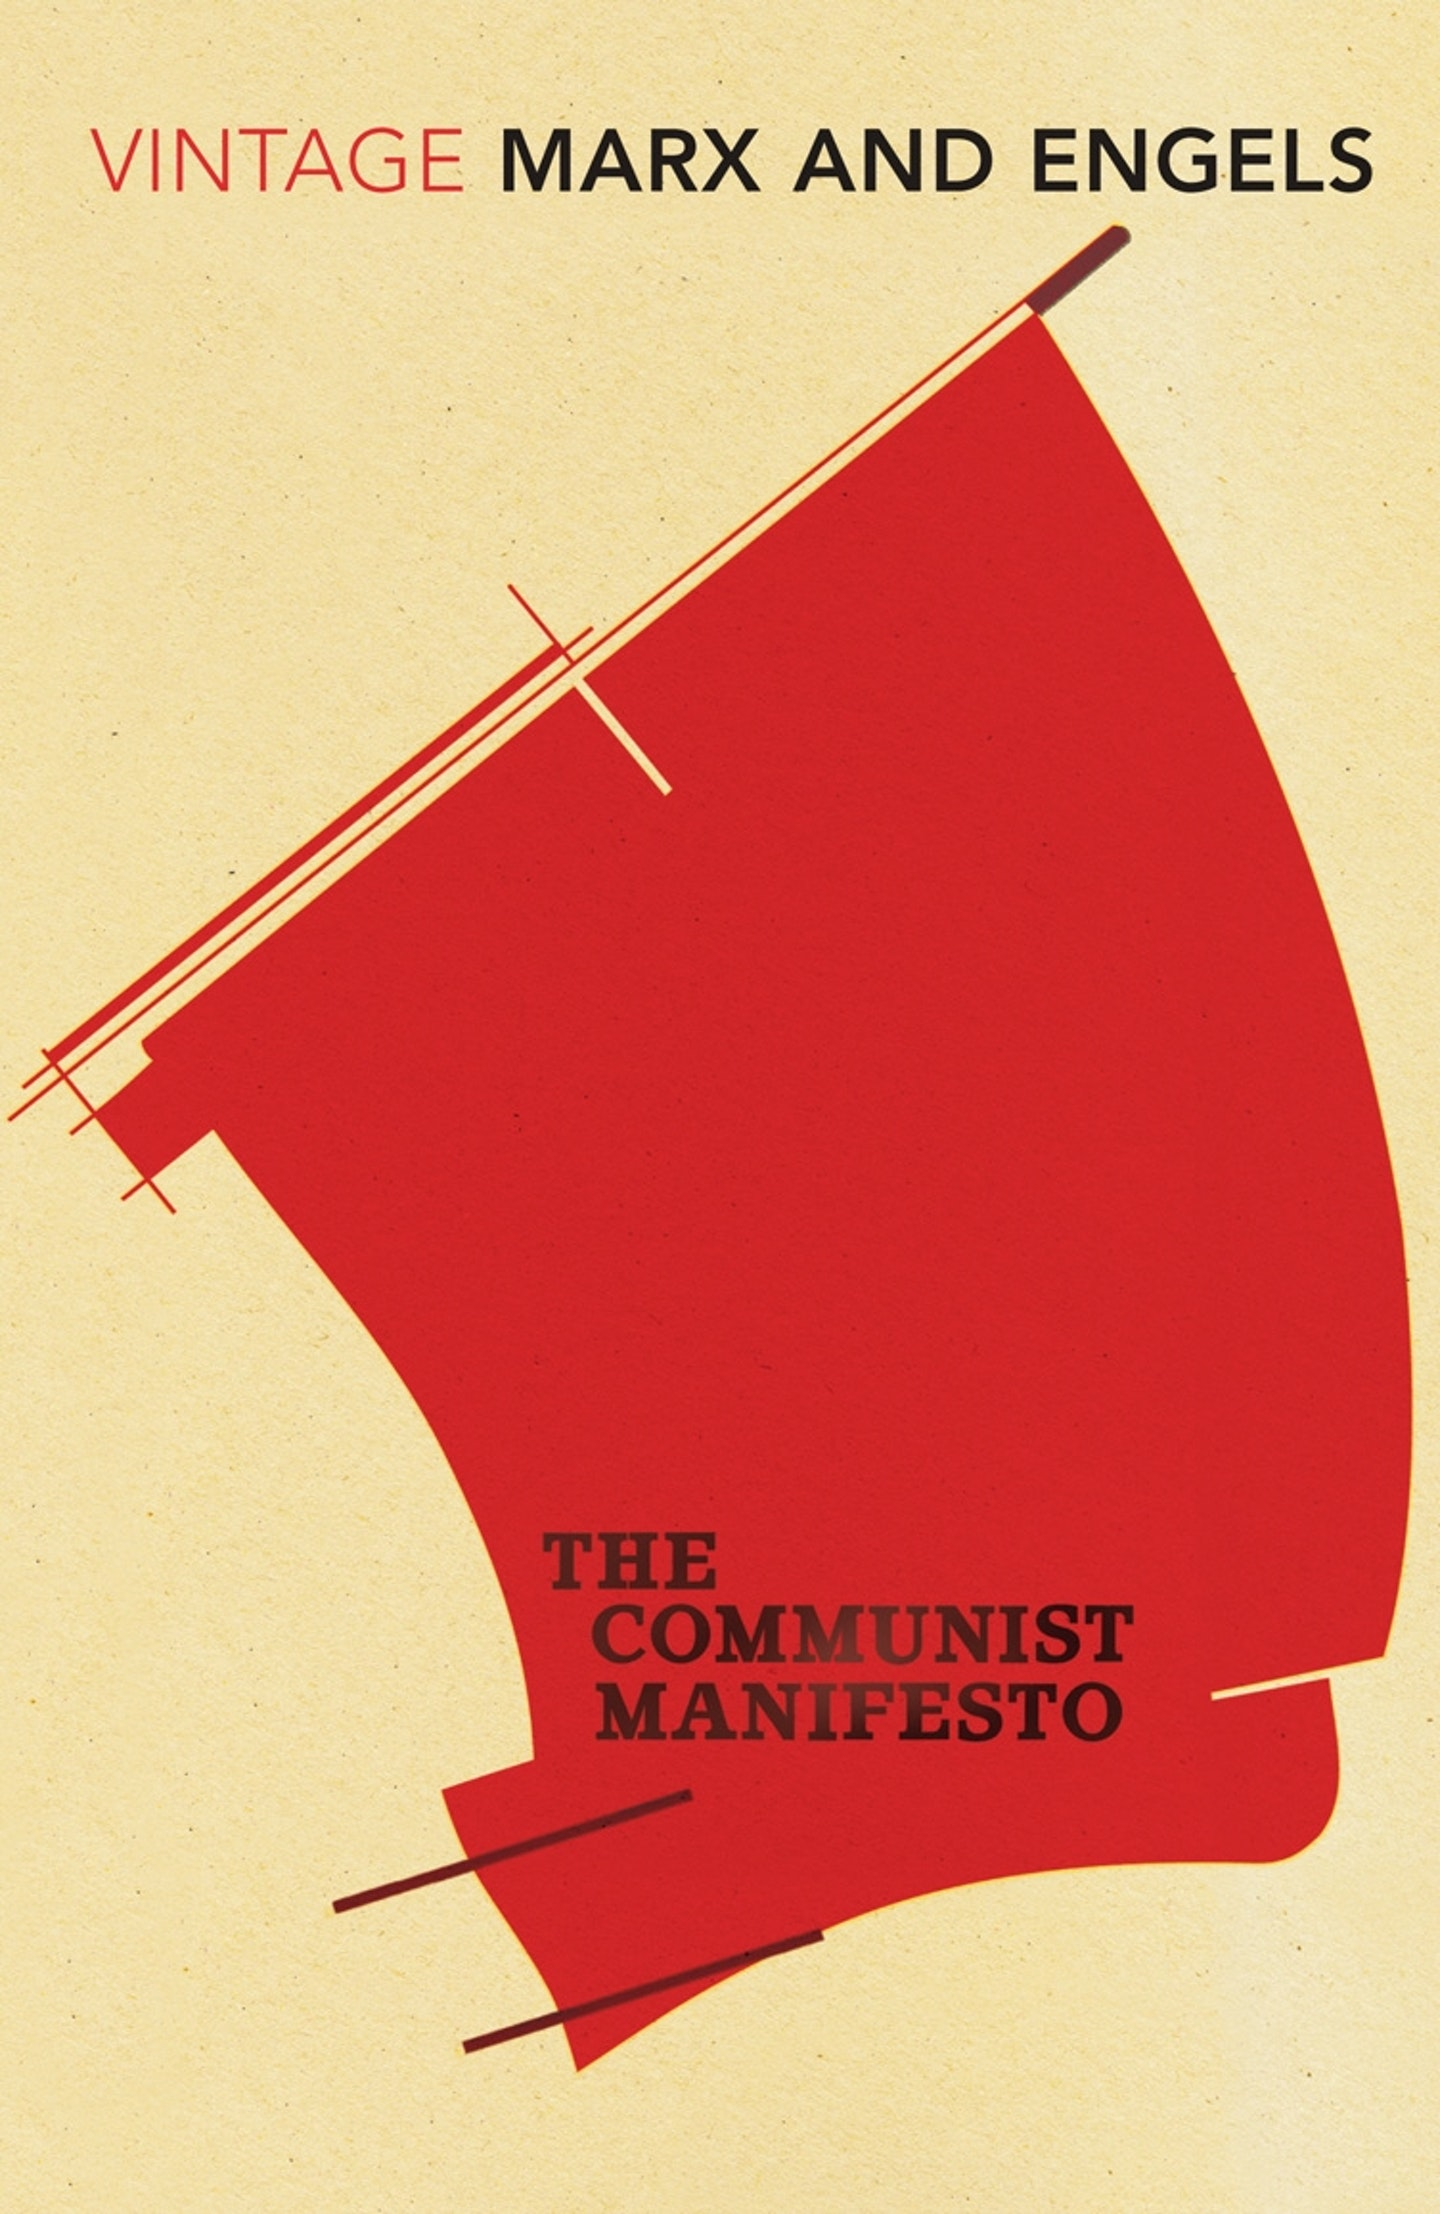 essay questions on the communist manifesto The communist manifesto the communist manifesto essay an essay business plan argumentative essay topics persuasive essay topics compare.